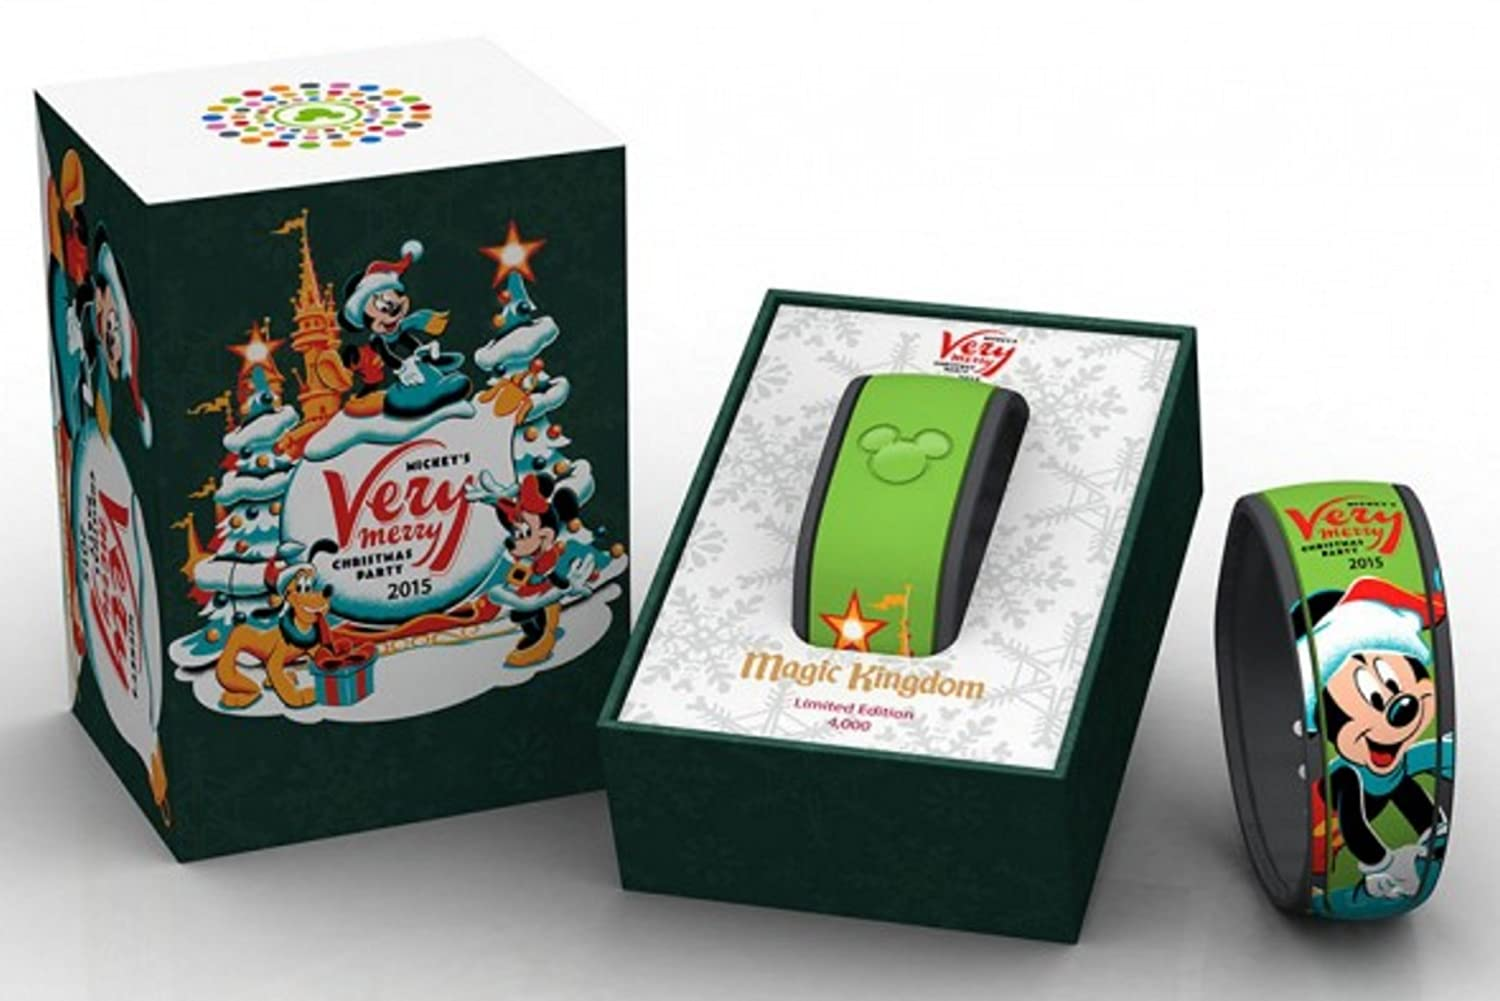 amazoncom disney world 2015 mickeys very merry christmas party limited edition 4000 magicband link it later magic band mvmcp jewelry - Disney Christmas Party 2015